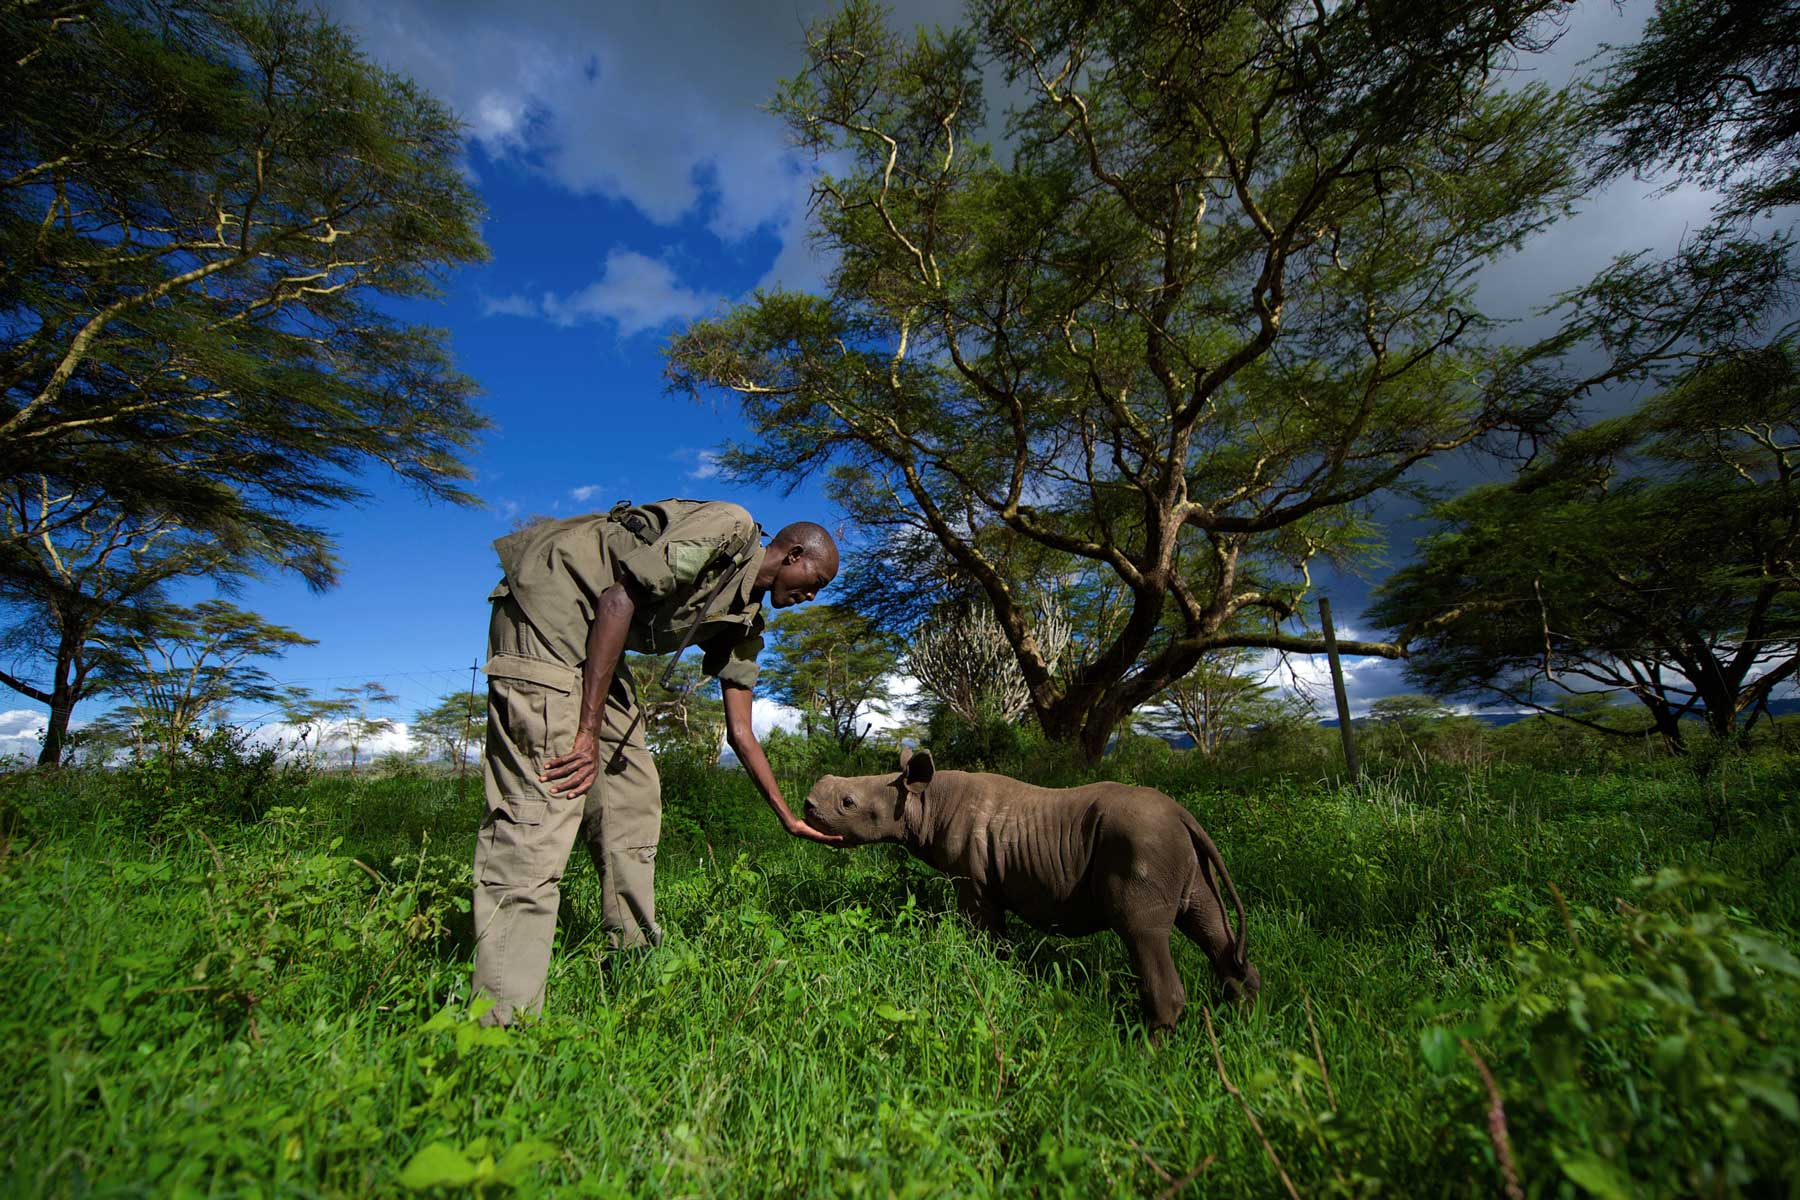 Leruati Morijo, a ranger at a remote outpost on Lewa wildlife Conservancy in Kenya, cares for a baby rhino